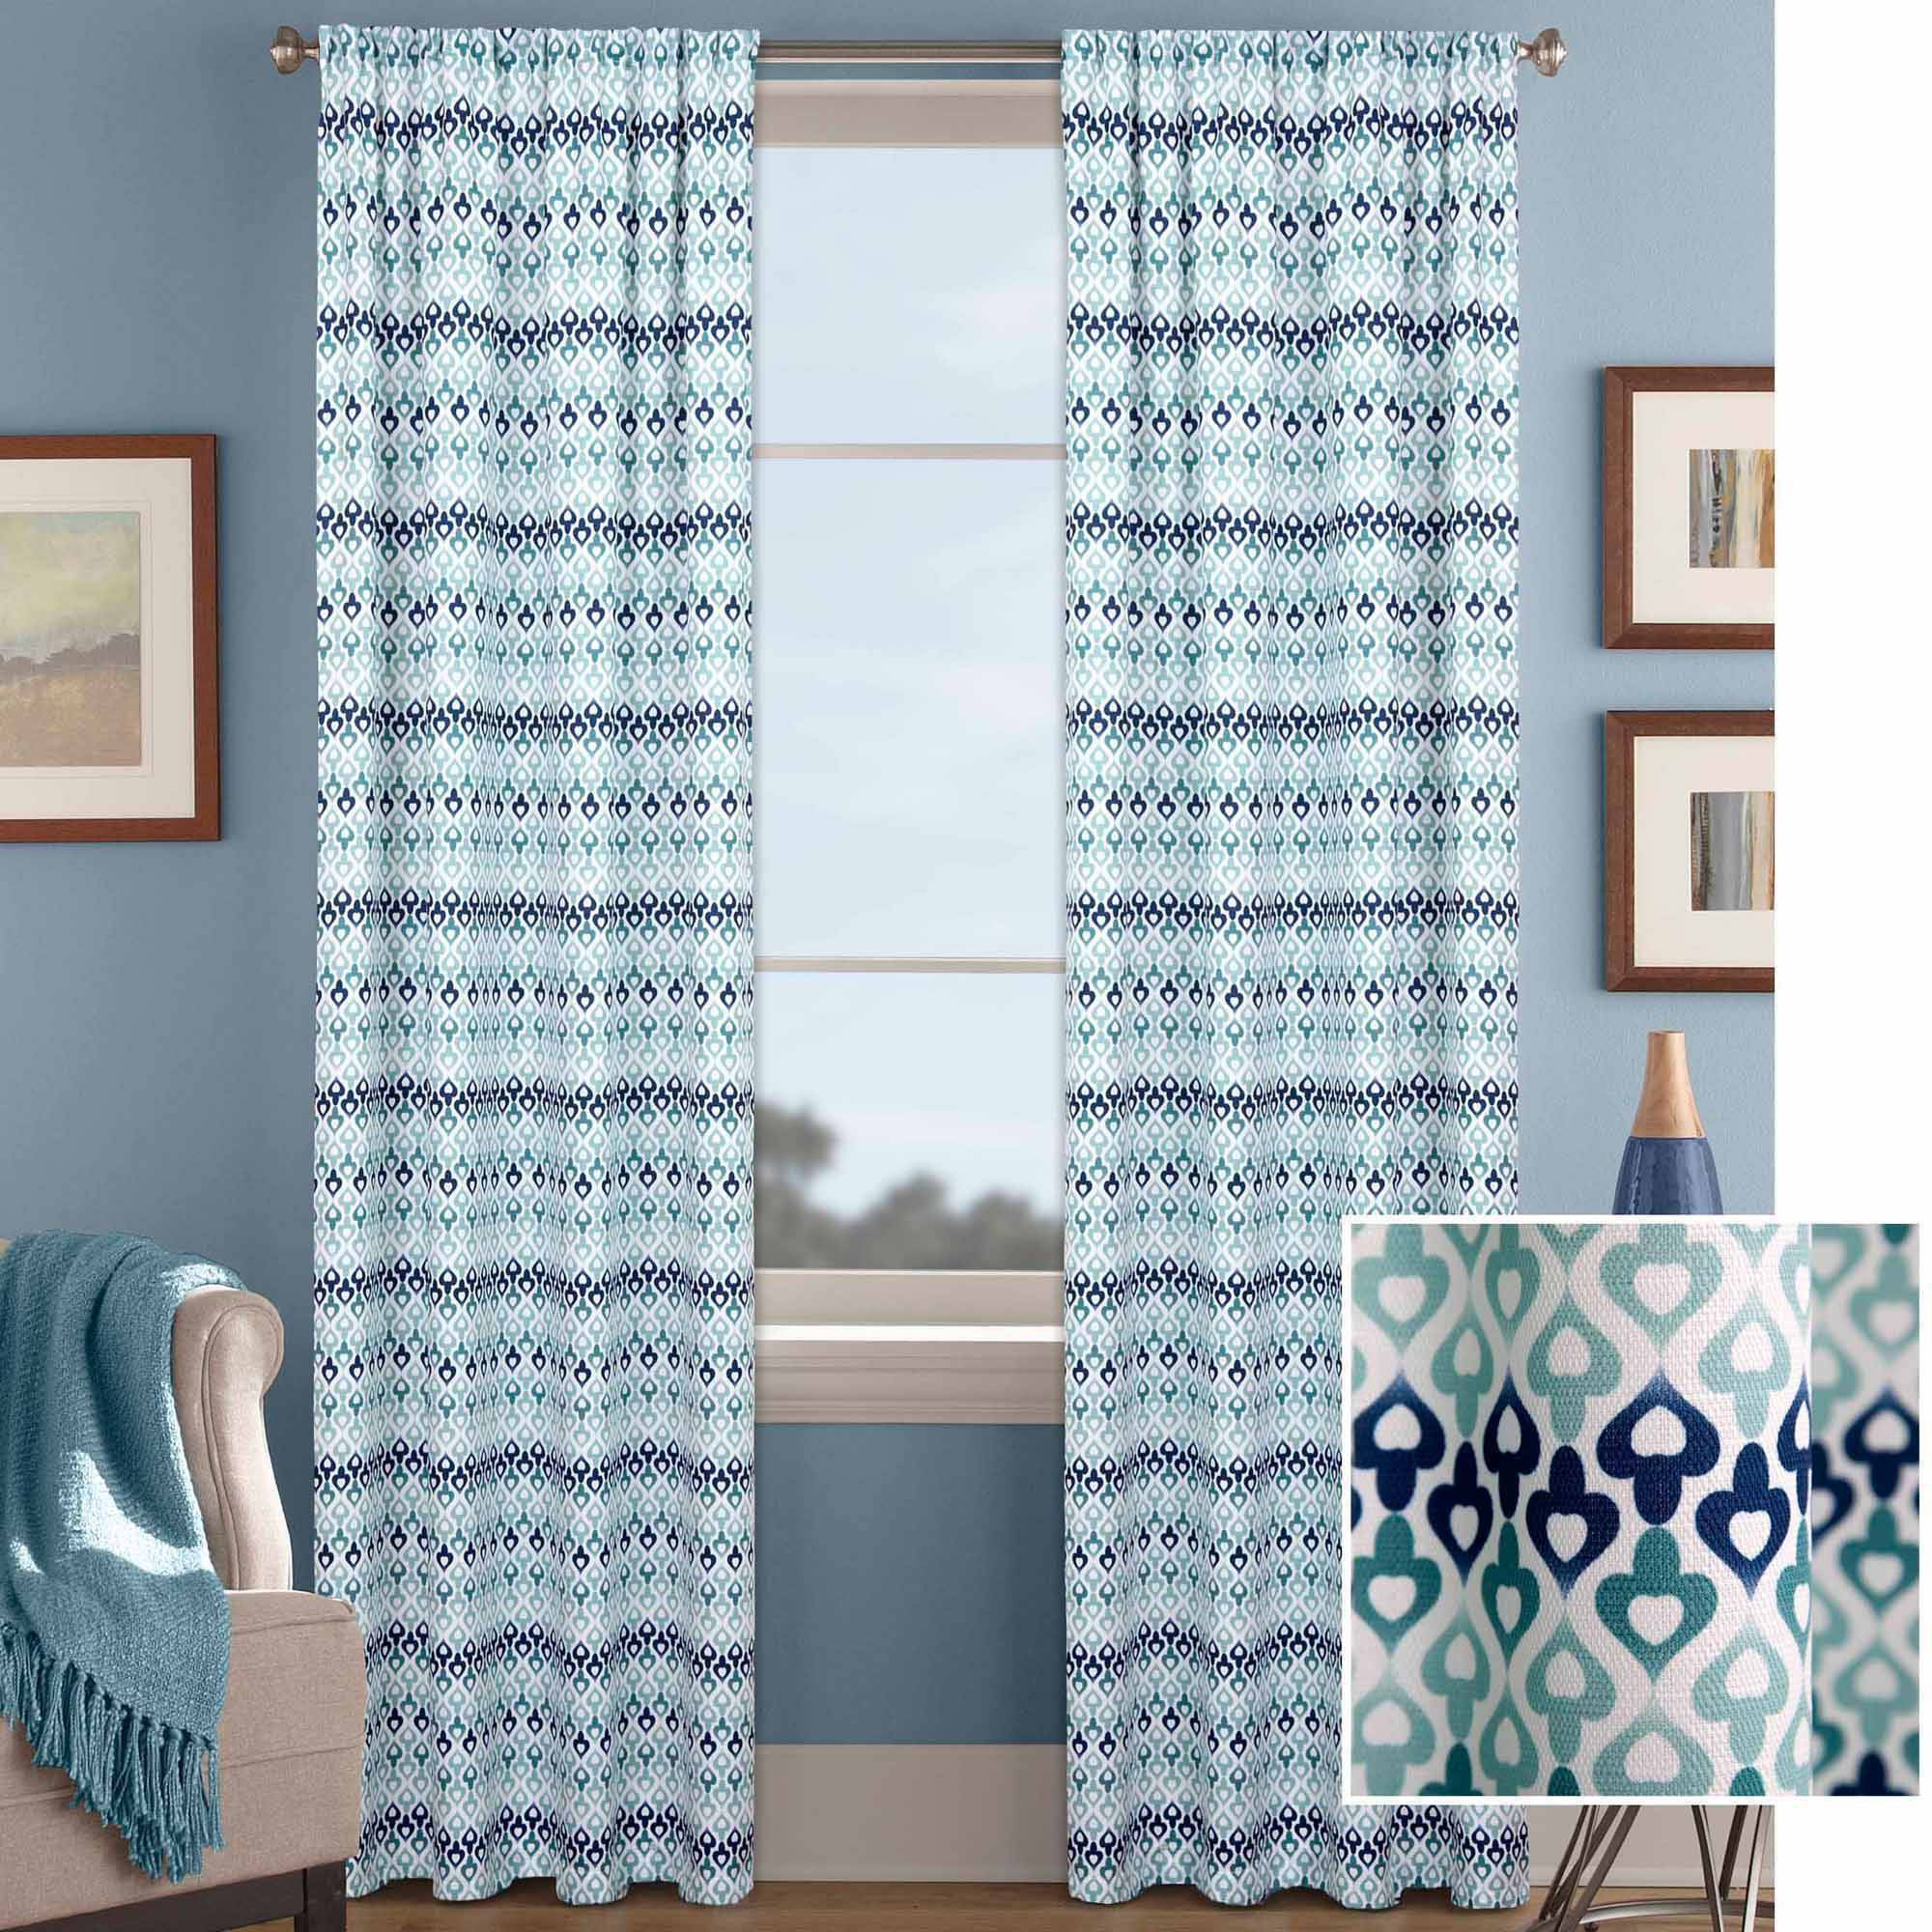 Better Homes and Gardens morocco Curtain Panel